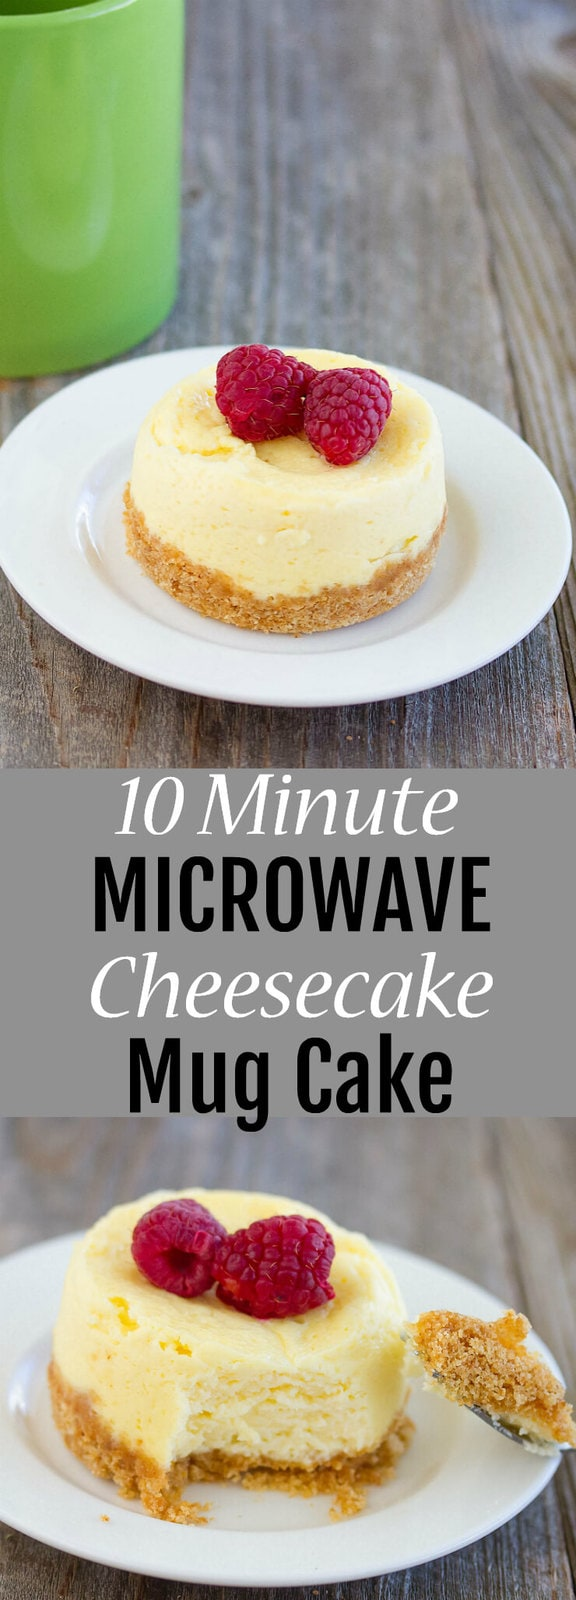 10 Minute Microwave Cheesecake Mug Cake. A quick and easy single serving cheesecake fix!